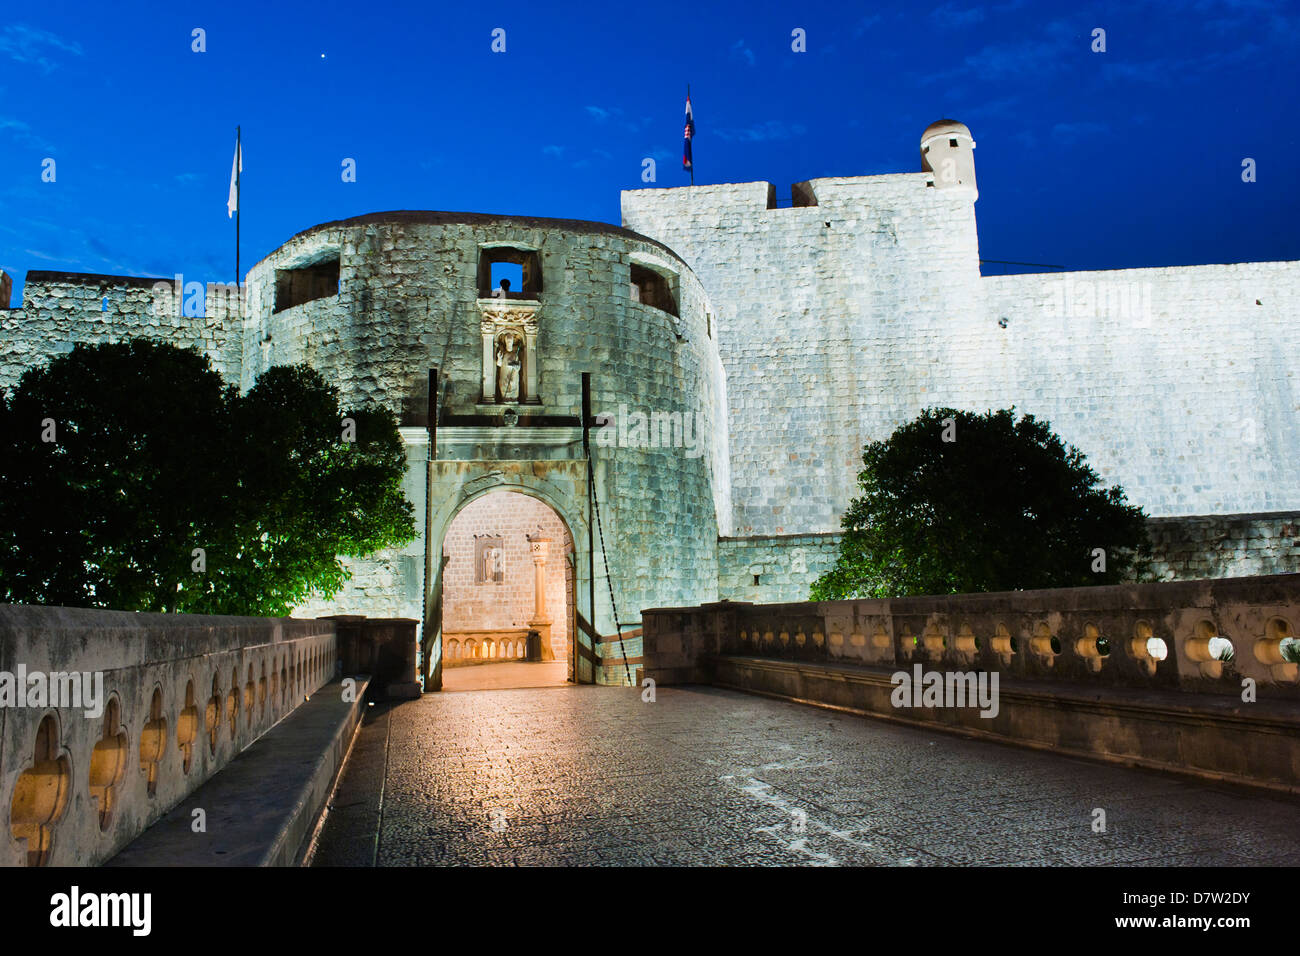 Pile Gate at night, the entrance to Dubrovnik Old Town, Dubrovnik, Croatia Stock Photo